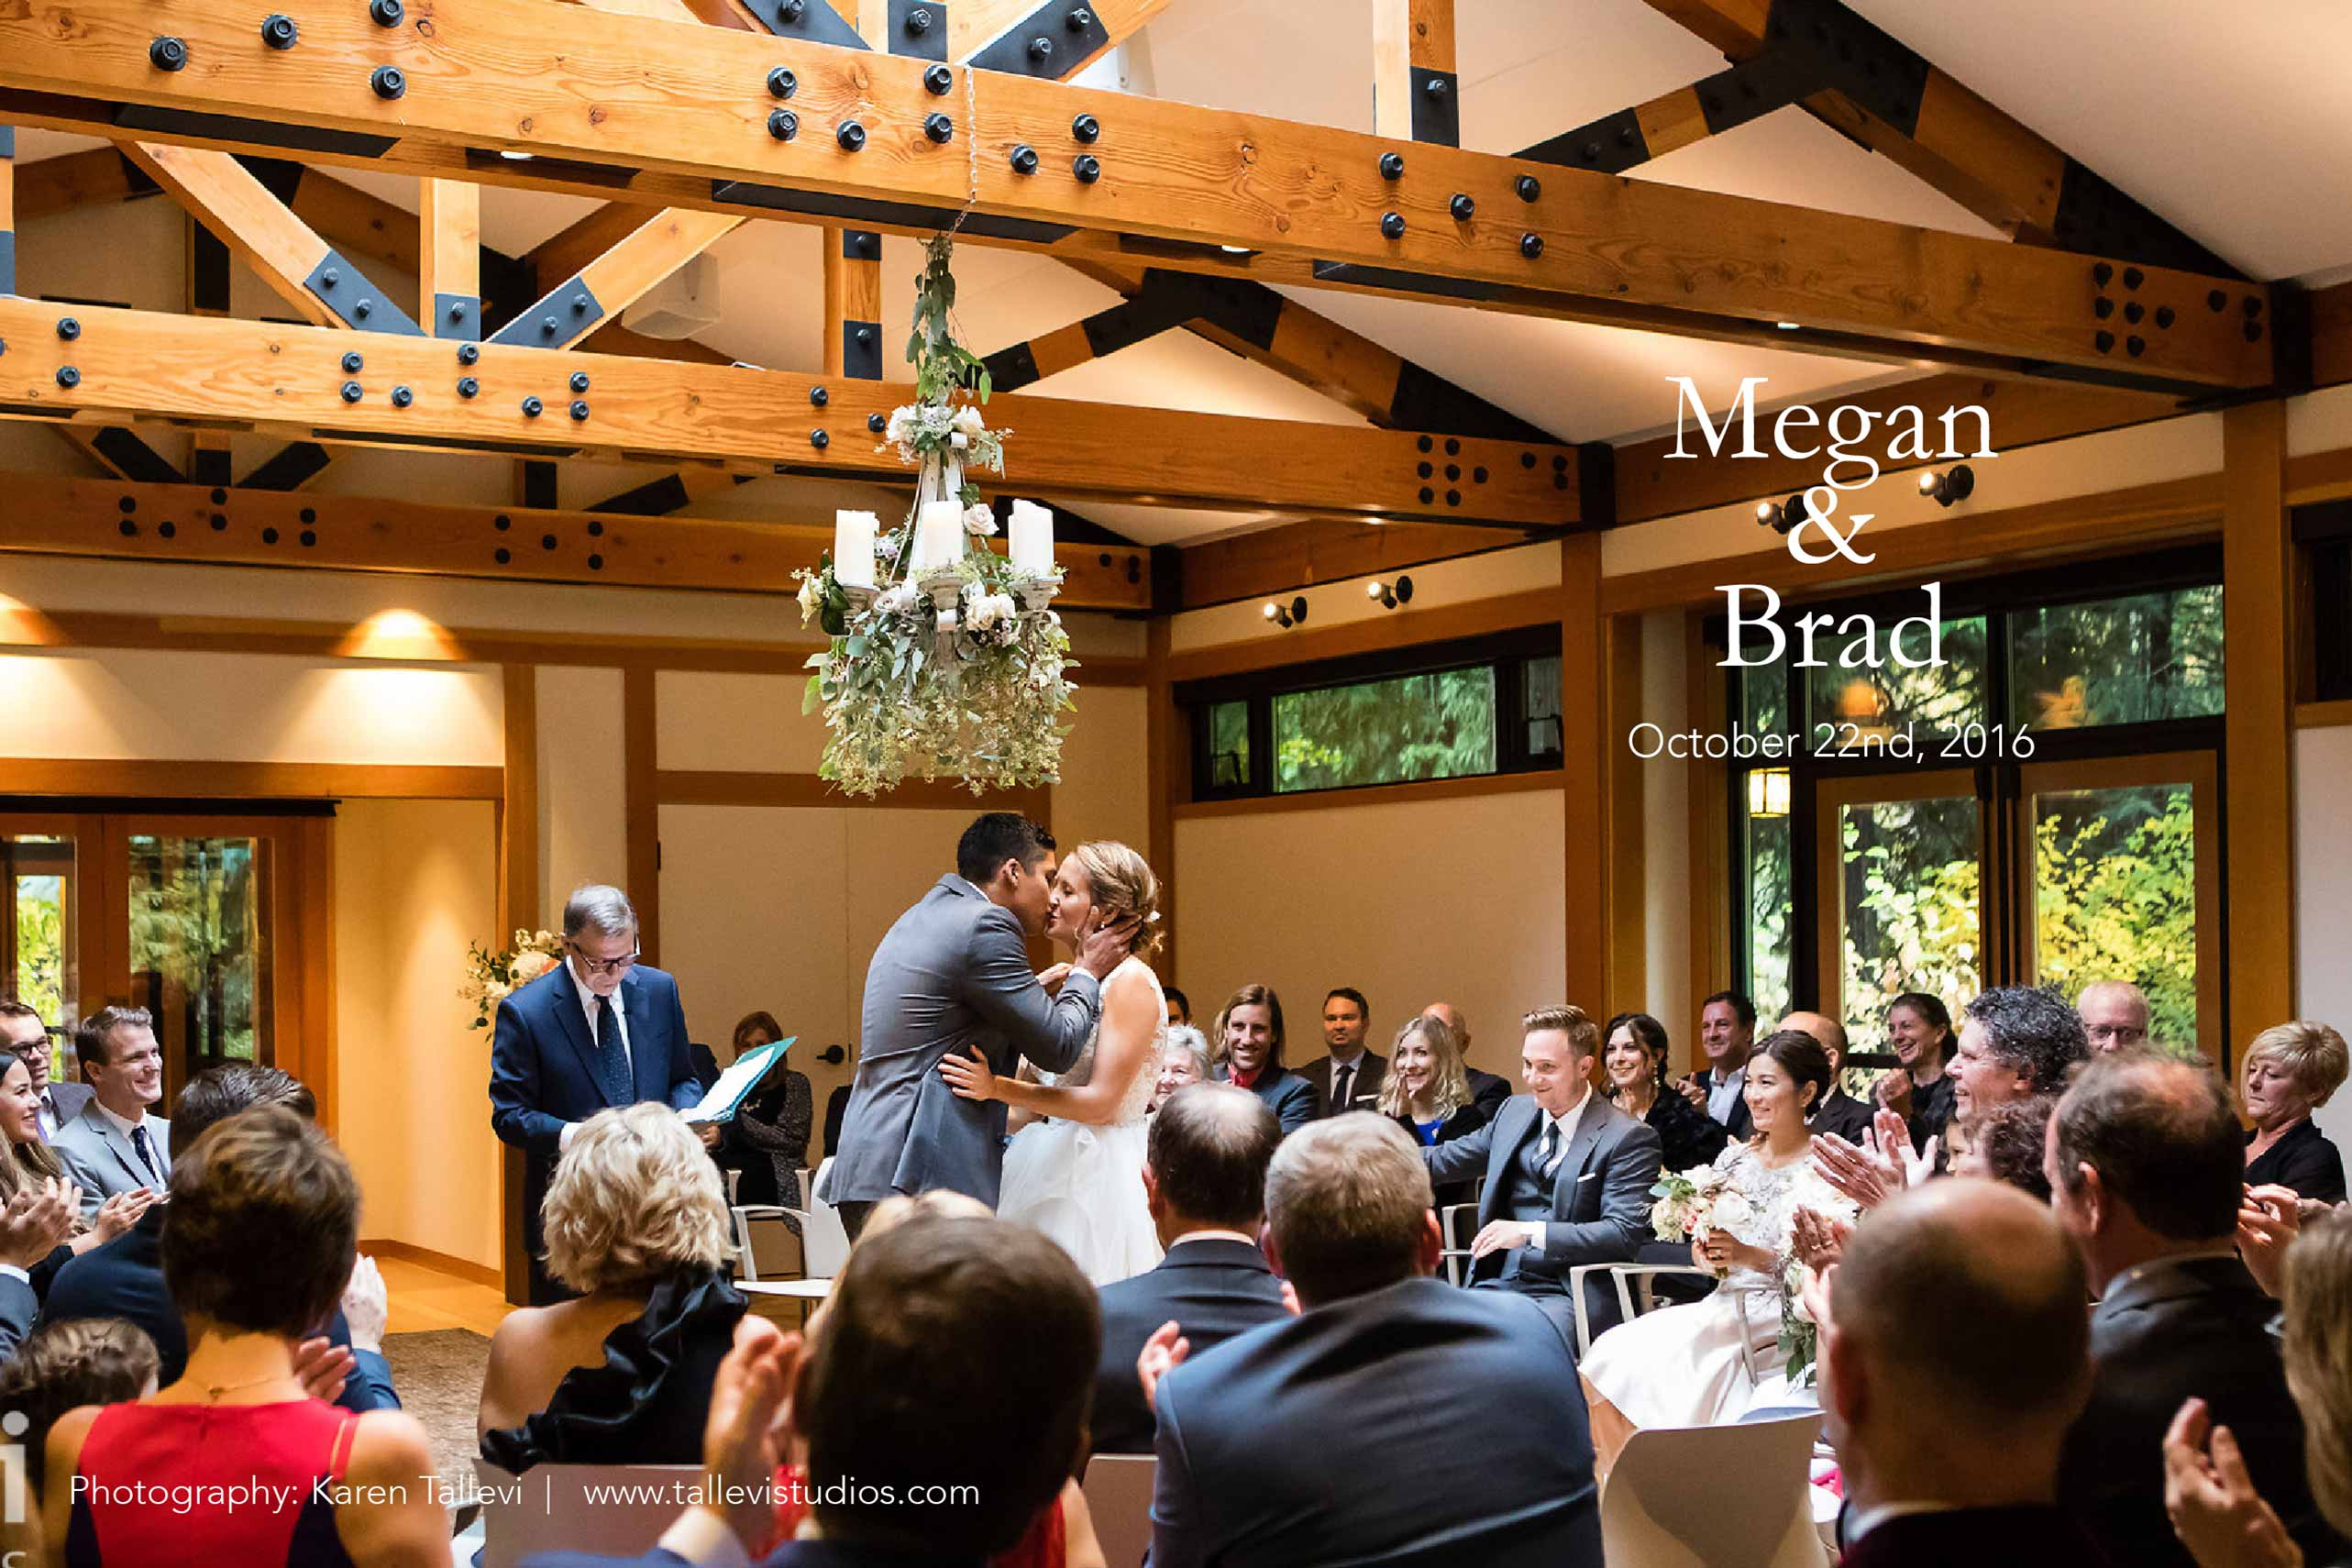 Megan and Brad's Wedding